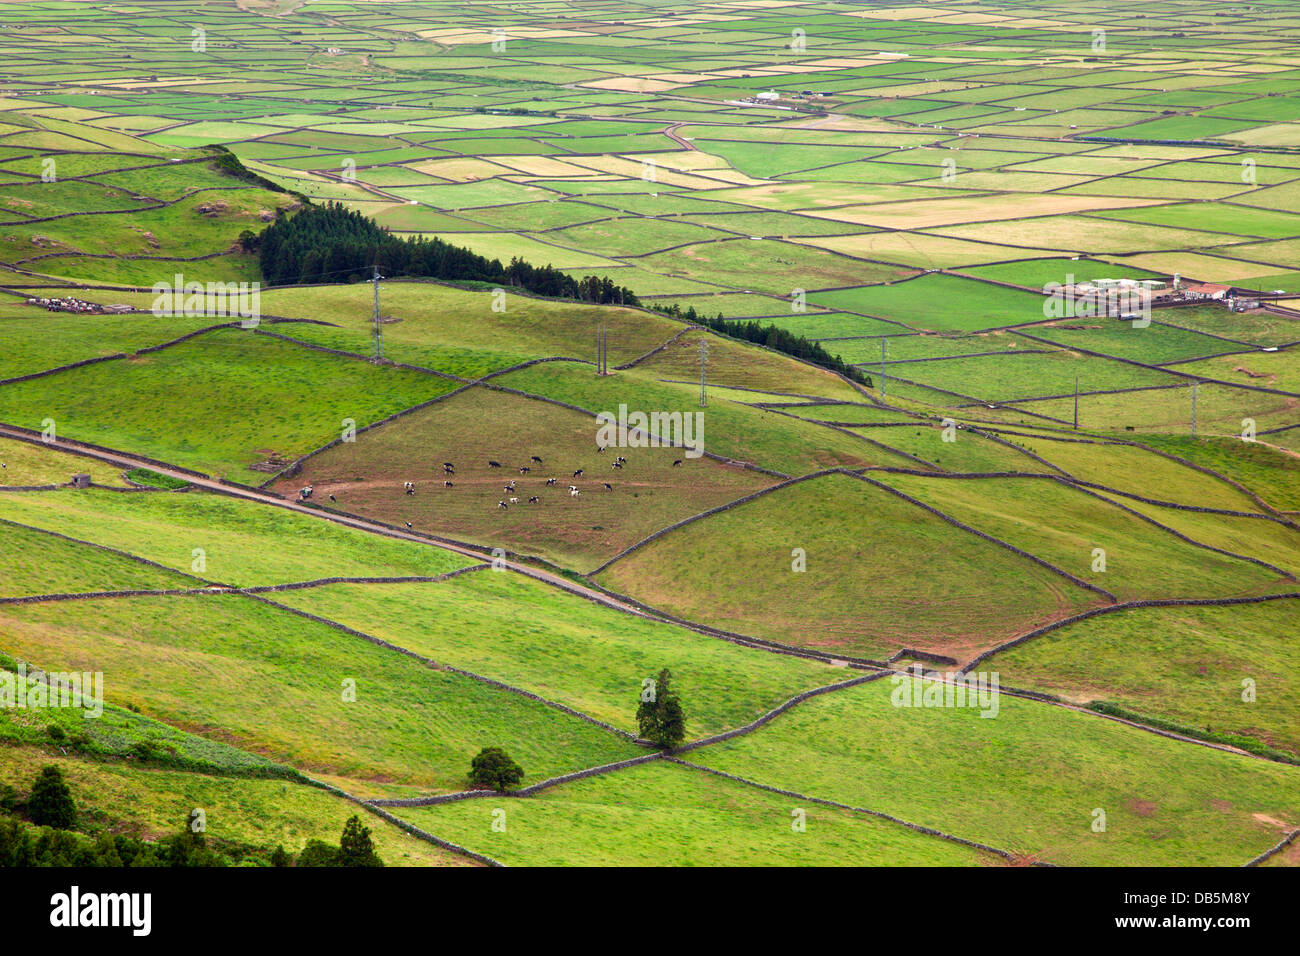 Patchwork paysage à la Serra do cume, l'île de Terceira, Açores Photo Stock